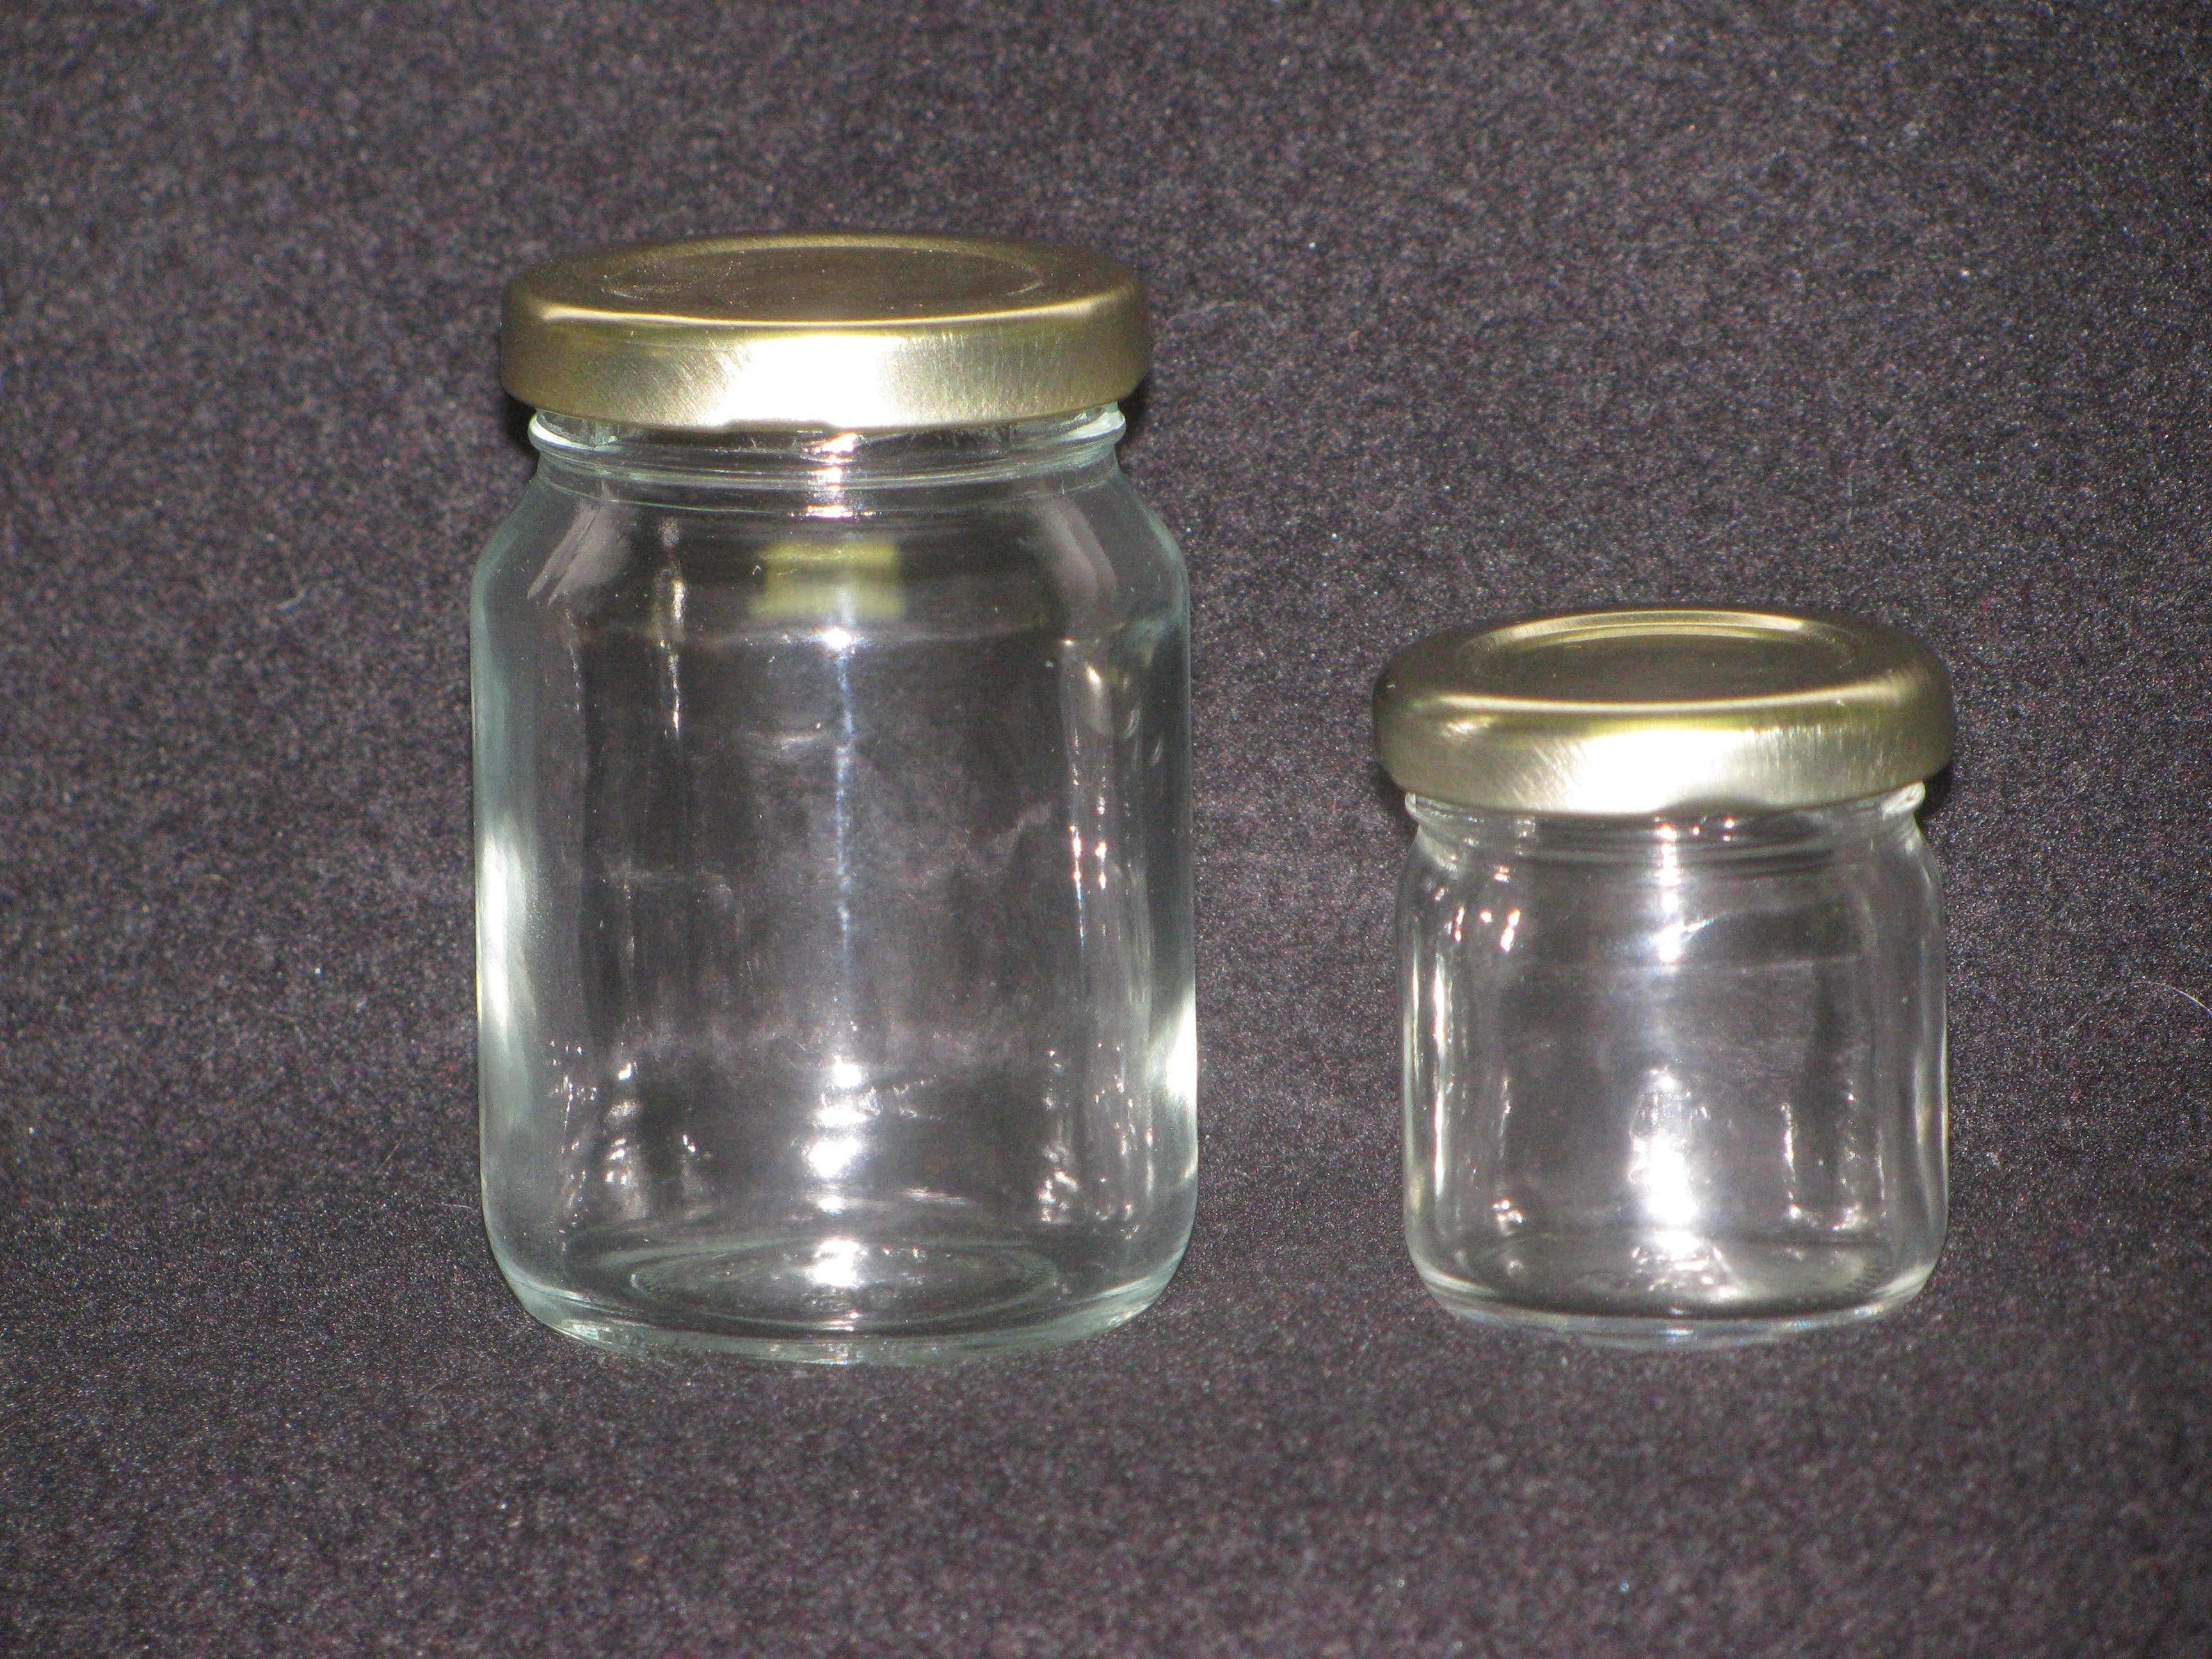 Mini Jars Glass Jar sold by Richards Packaging, Inc